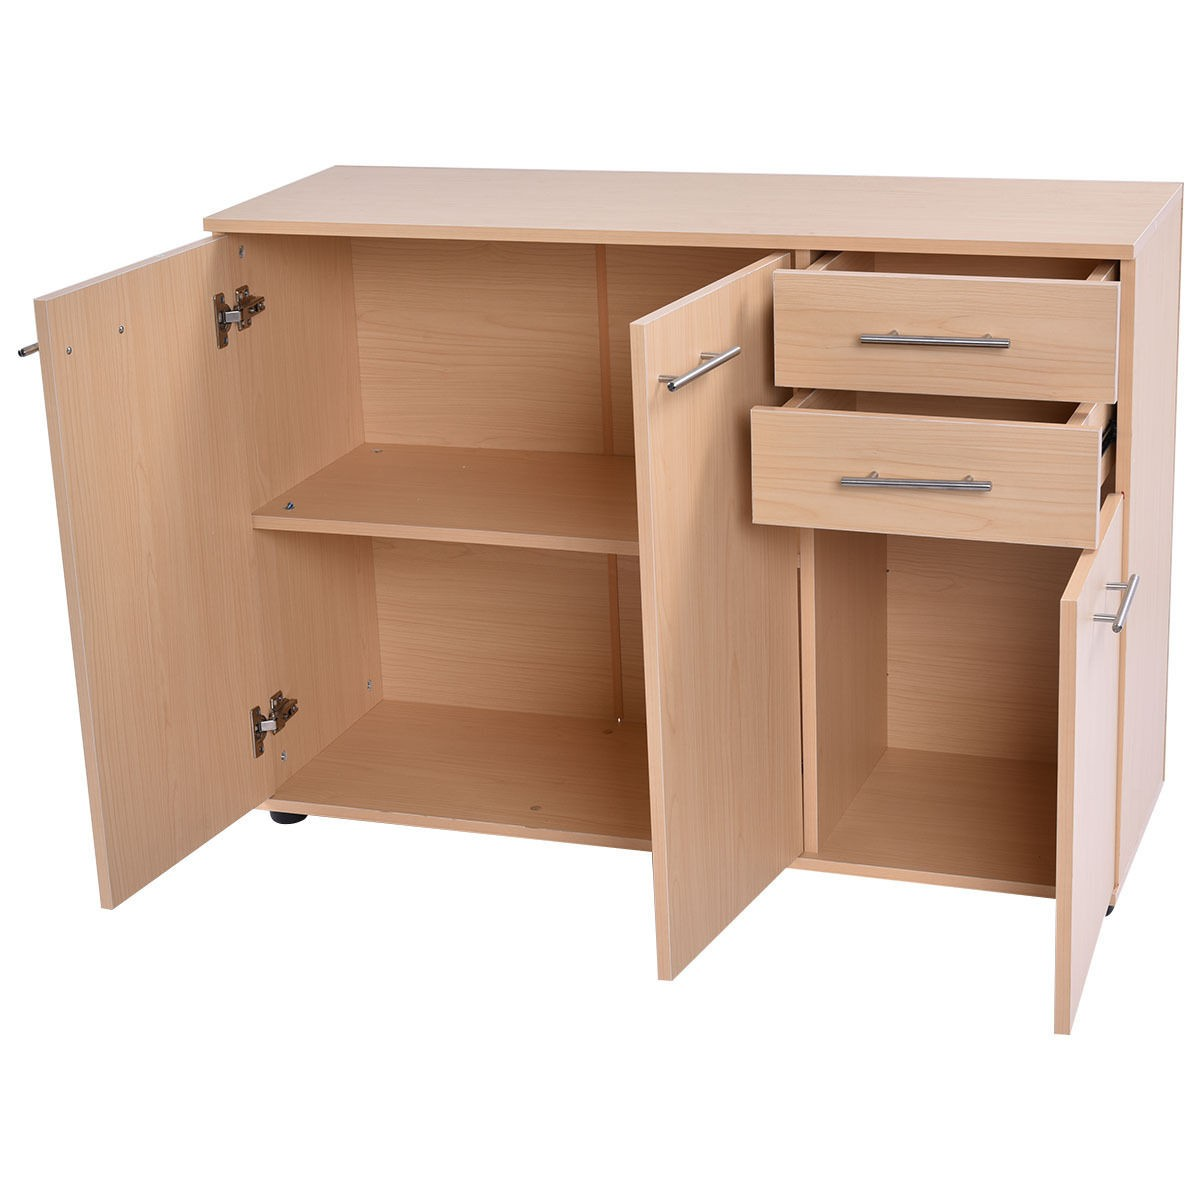 US Office Storage Cabinet Cupboard Organizer 3 Doors double Shelves Furniture | eBay